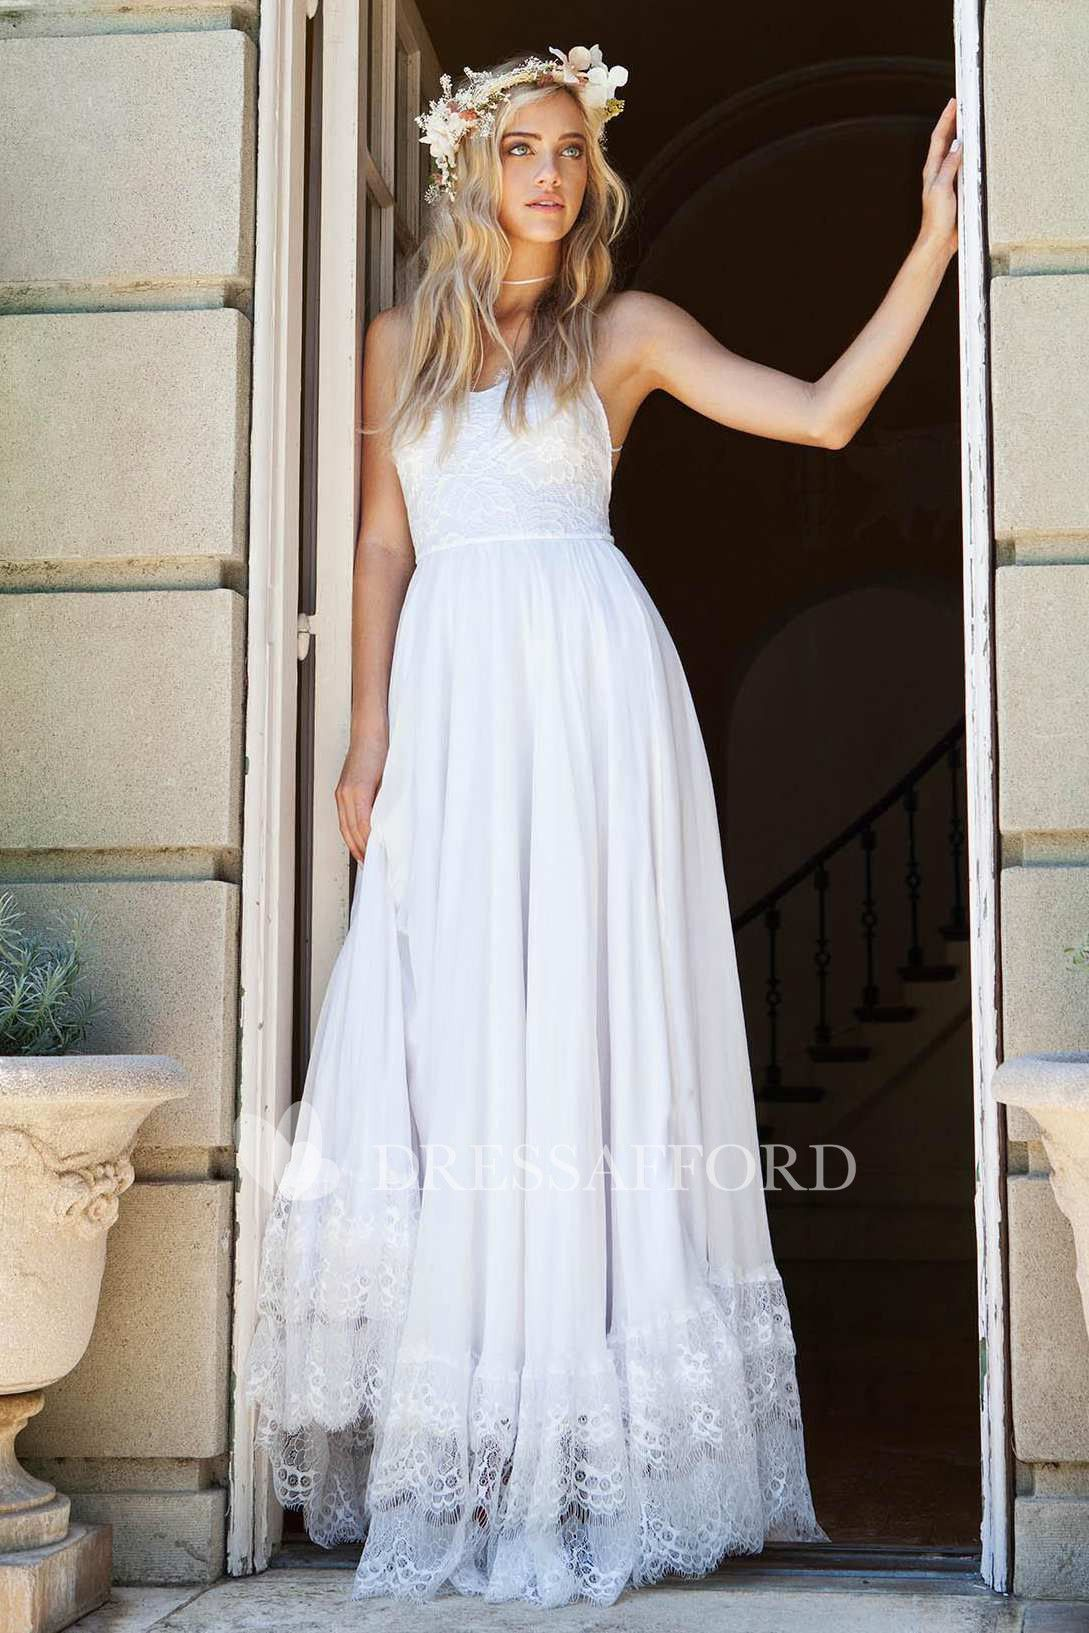 2020 Best Weddingg Dress New Style Wedding Venues In Semi Formal Outfits For Ladies 2018